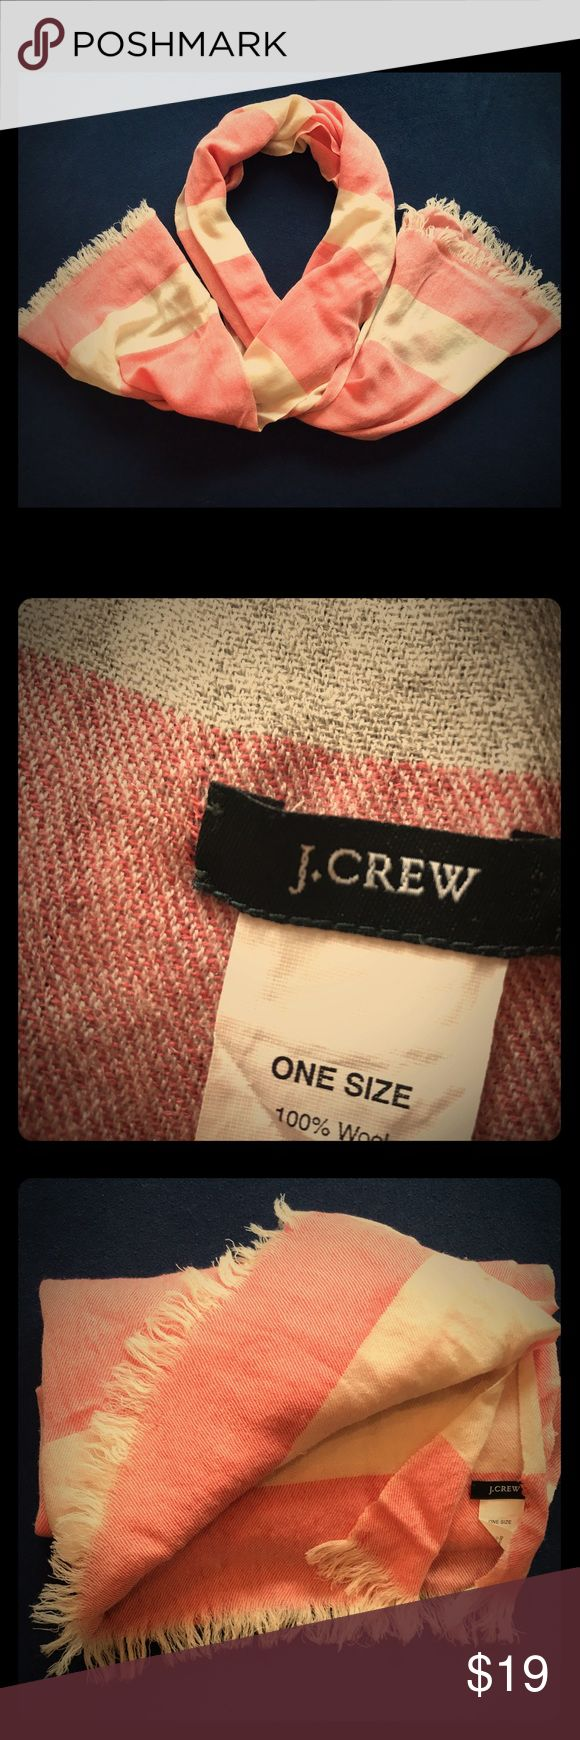 J Crew All Wool Nautical Scarf Be whisked away in the breeze with this beautiful and soft all wool scarf from J CREW. It is striped light red and cream, giving it a vintage feel. And, don't forget the tasseled ends to add some flare to your easy breezy look. Add a dash of class to your outfit with this versatile piece! Perfect for summer afternoons and nights when the breeze picks up. See pics for more about its gently loved condition. No stains, carefully stored in a smoke free environment…